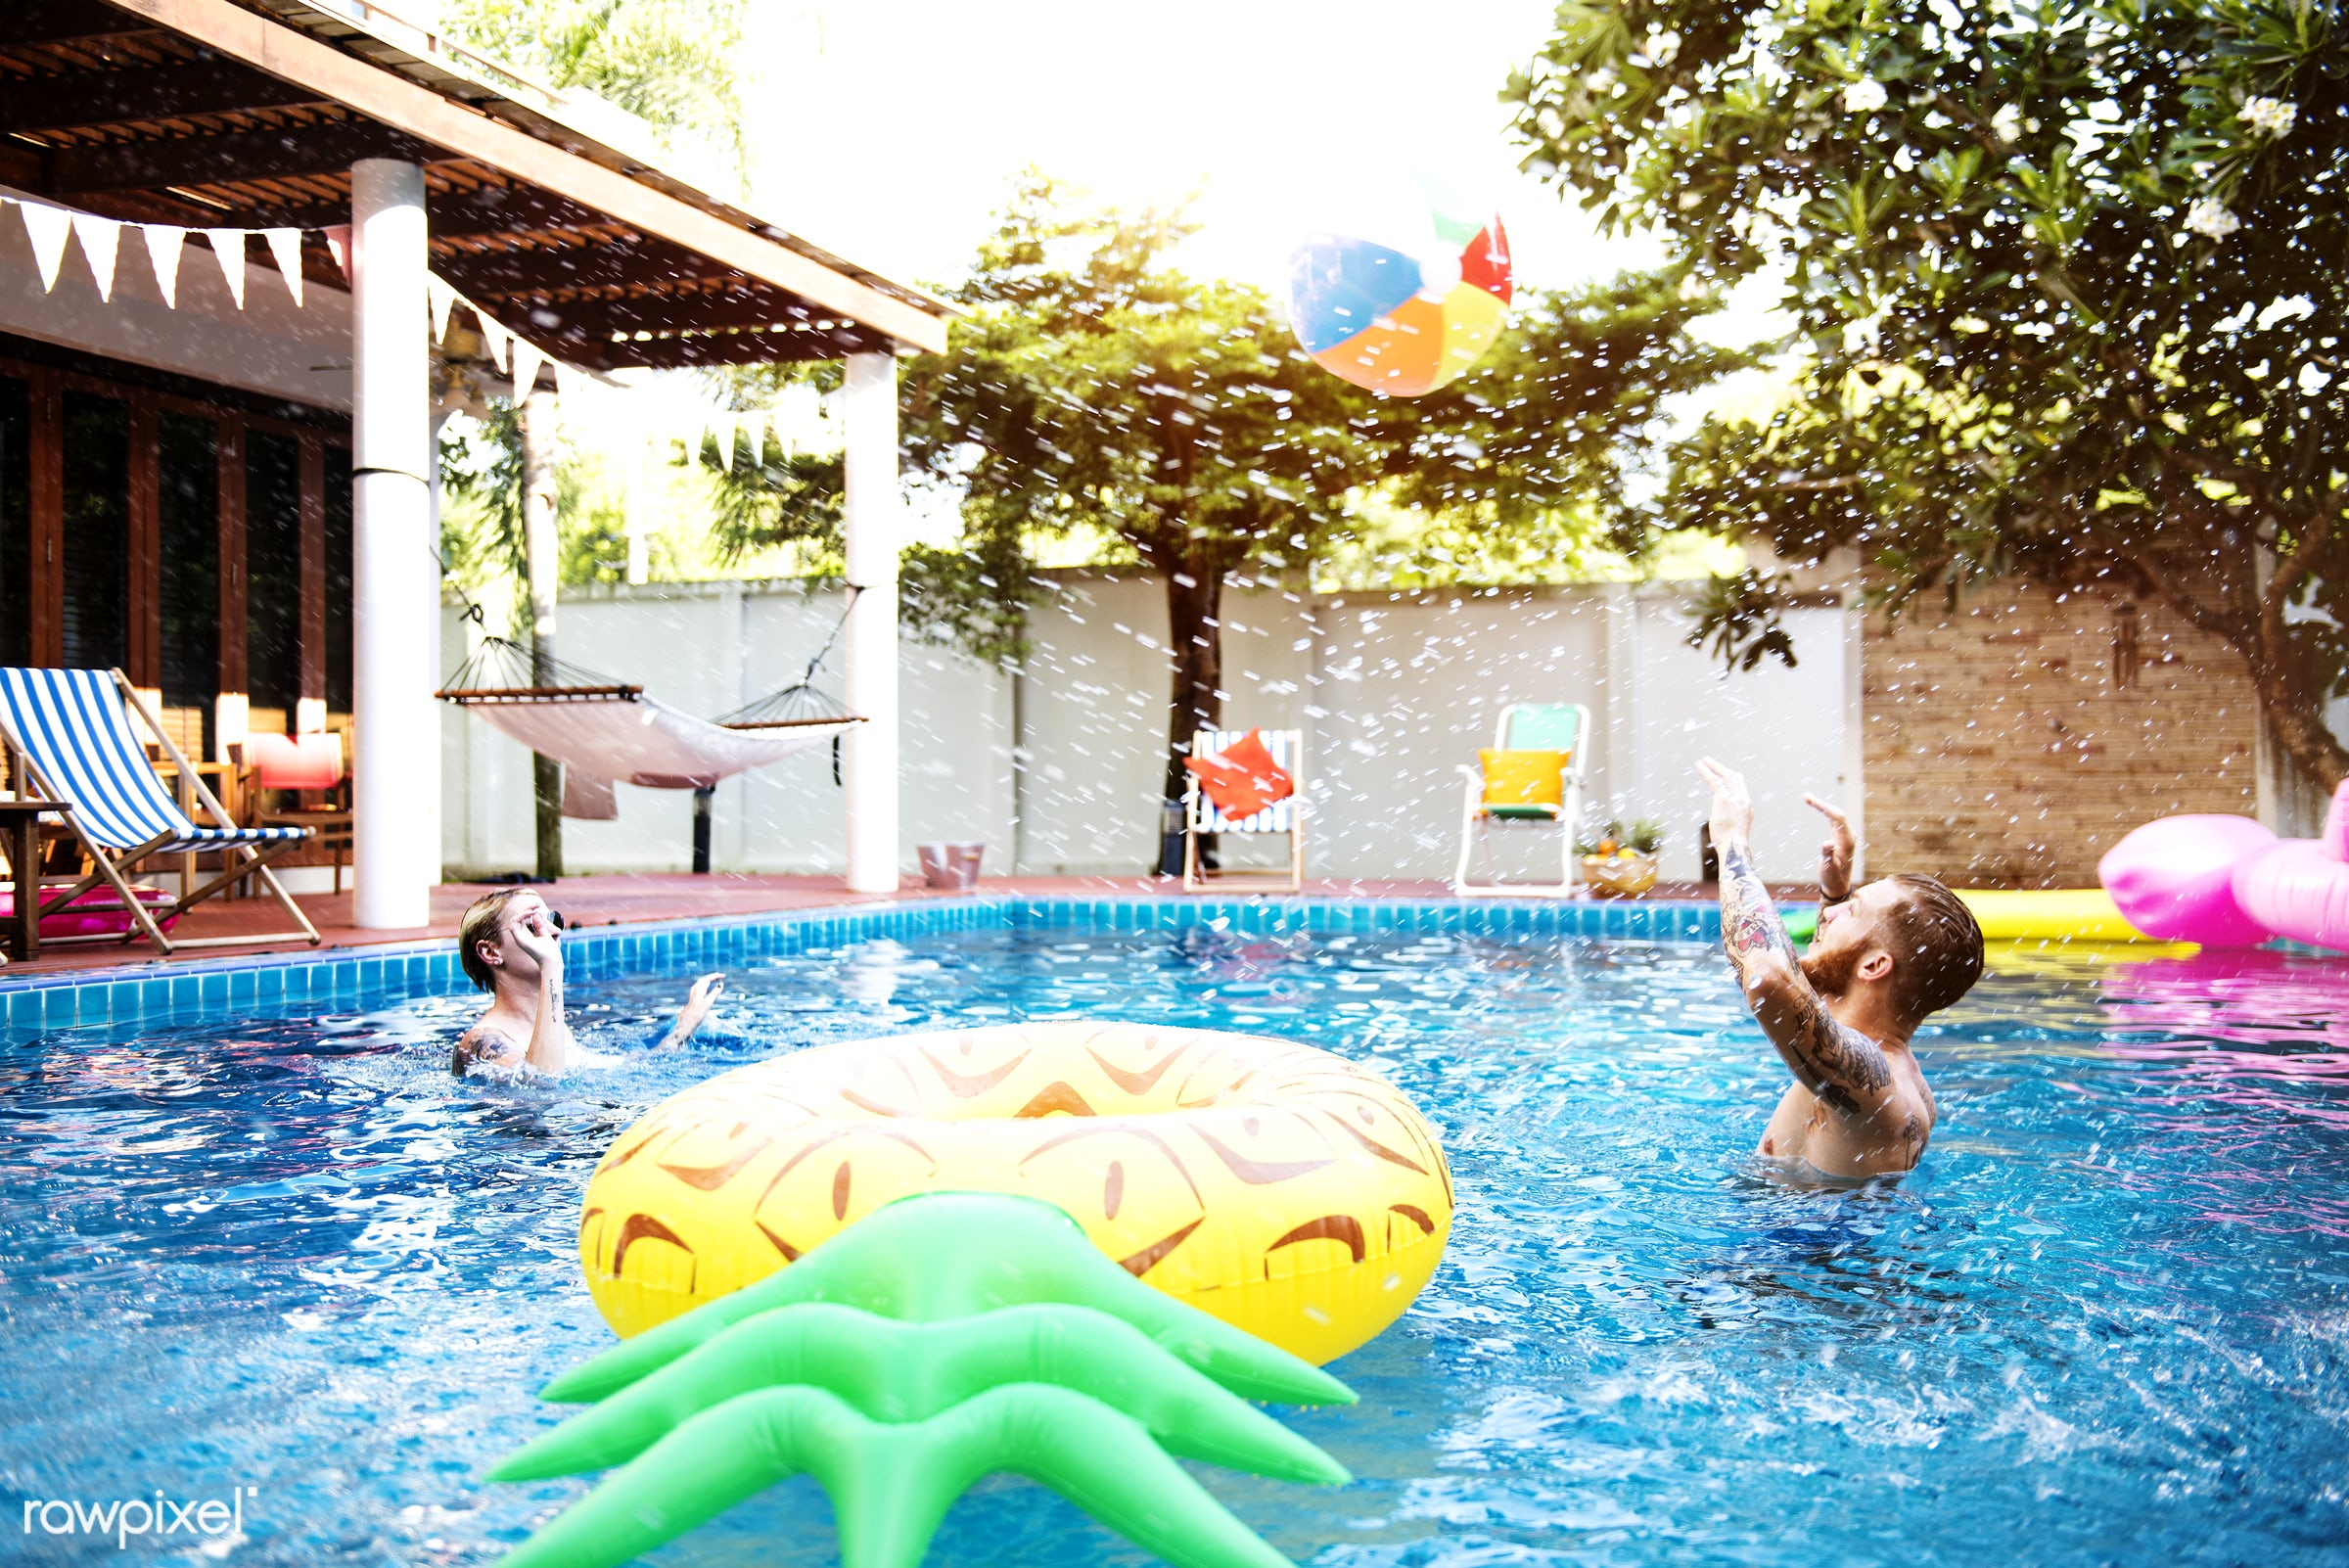 relax, diverse, recreation, party, people, together, friends, pool, tubes, cheerful, enjoying, happiness, leisure, fun,...